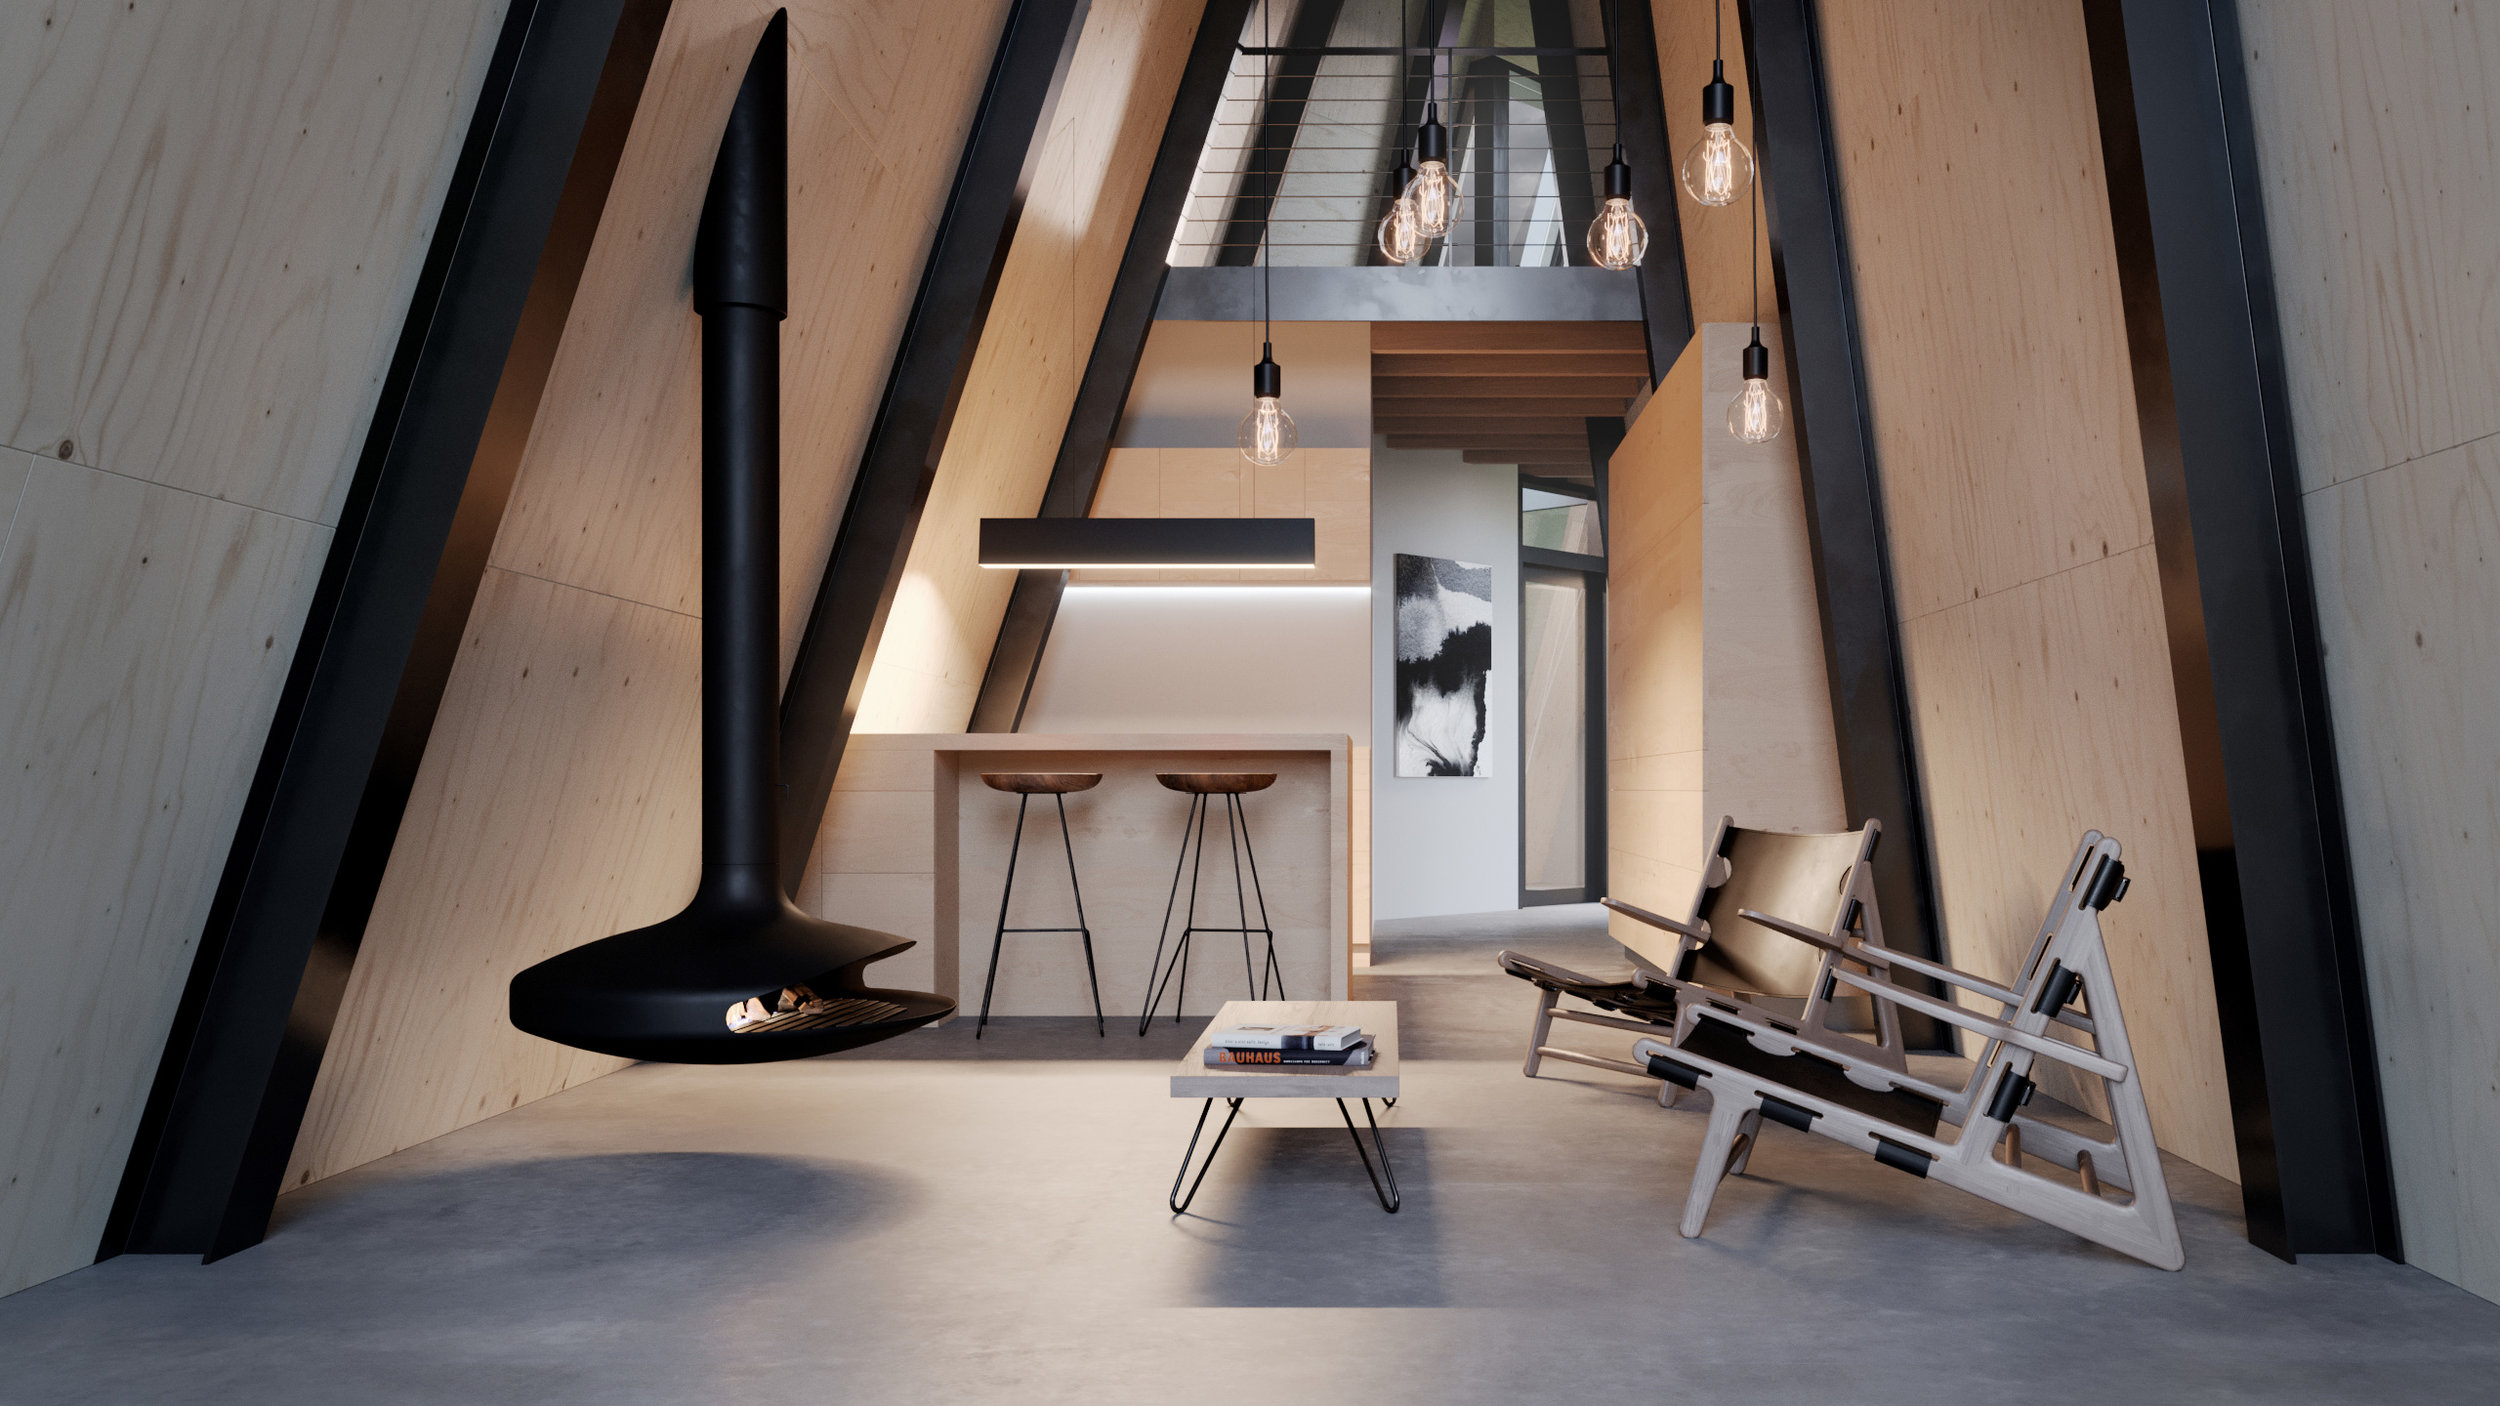 architectural-visualization-attic-cottages-yurii-suhov-03.jpg